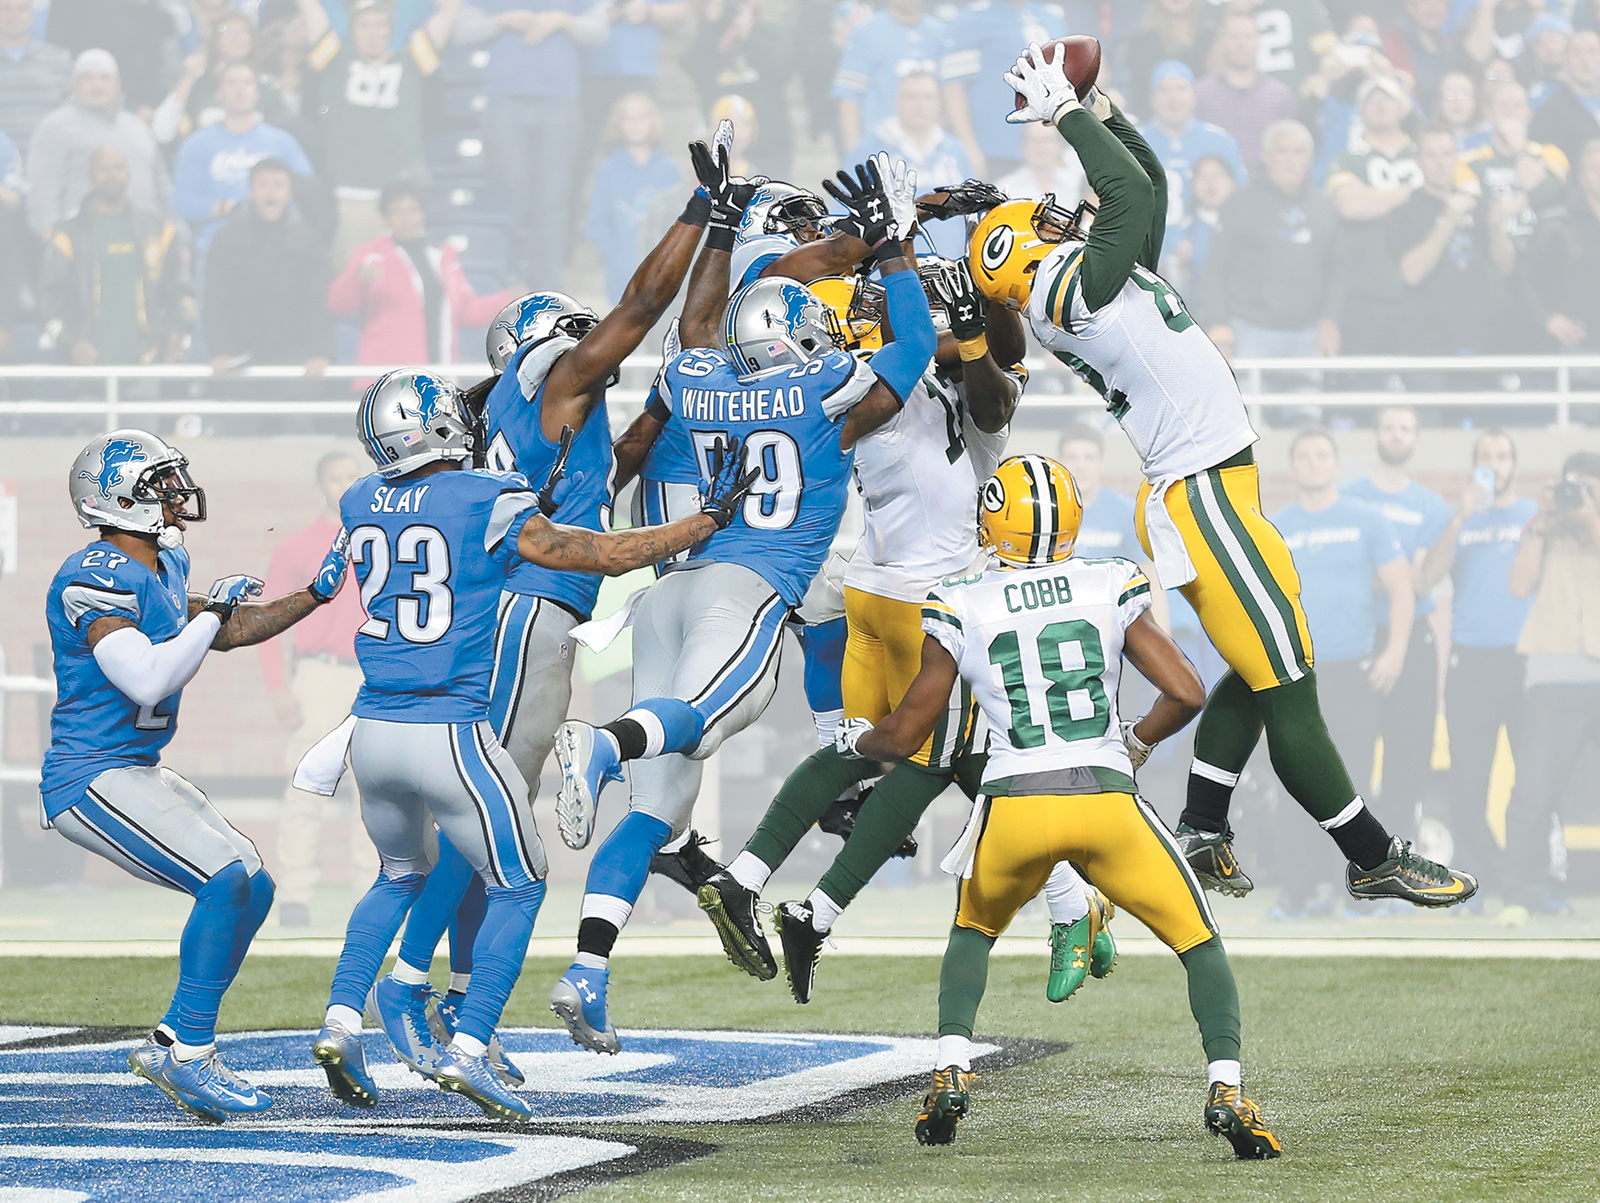 Richard Rodgers of the Green Bay Packers catching Aaron Rodgers's seventy-yard pass to win the game against the Detroit Lions, December 3, 2015